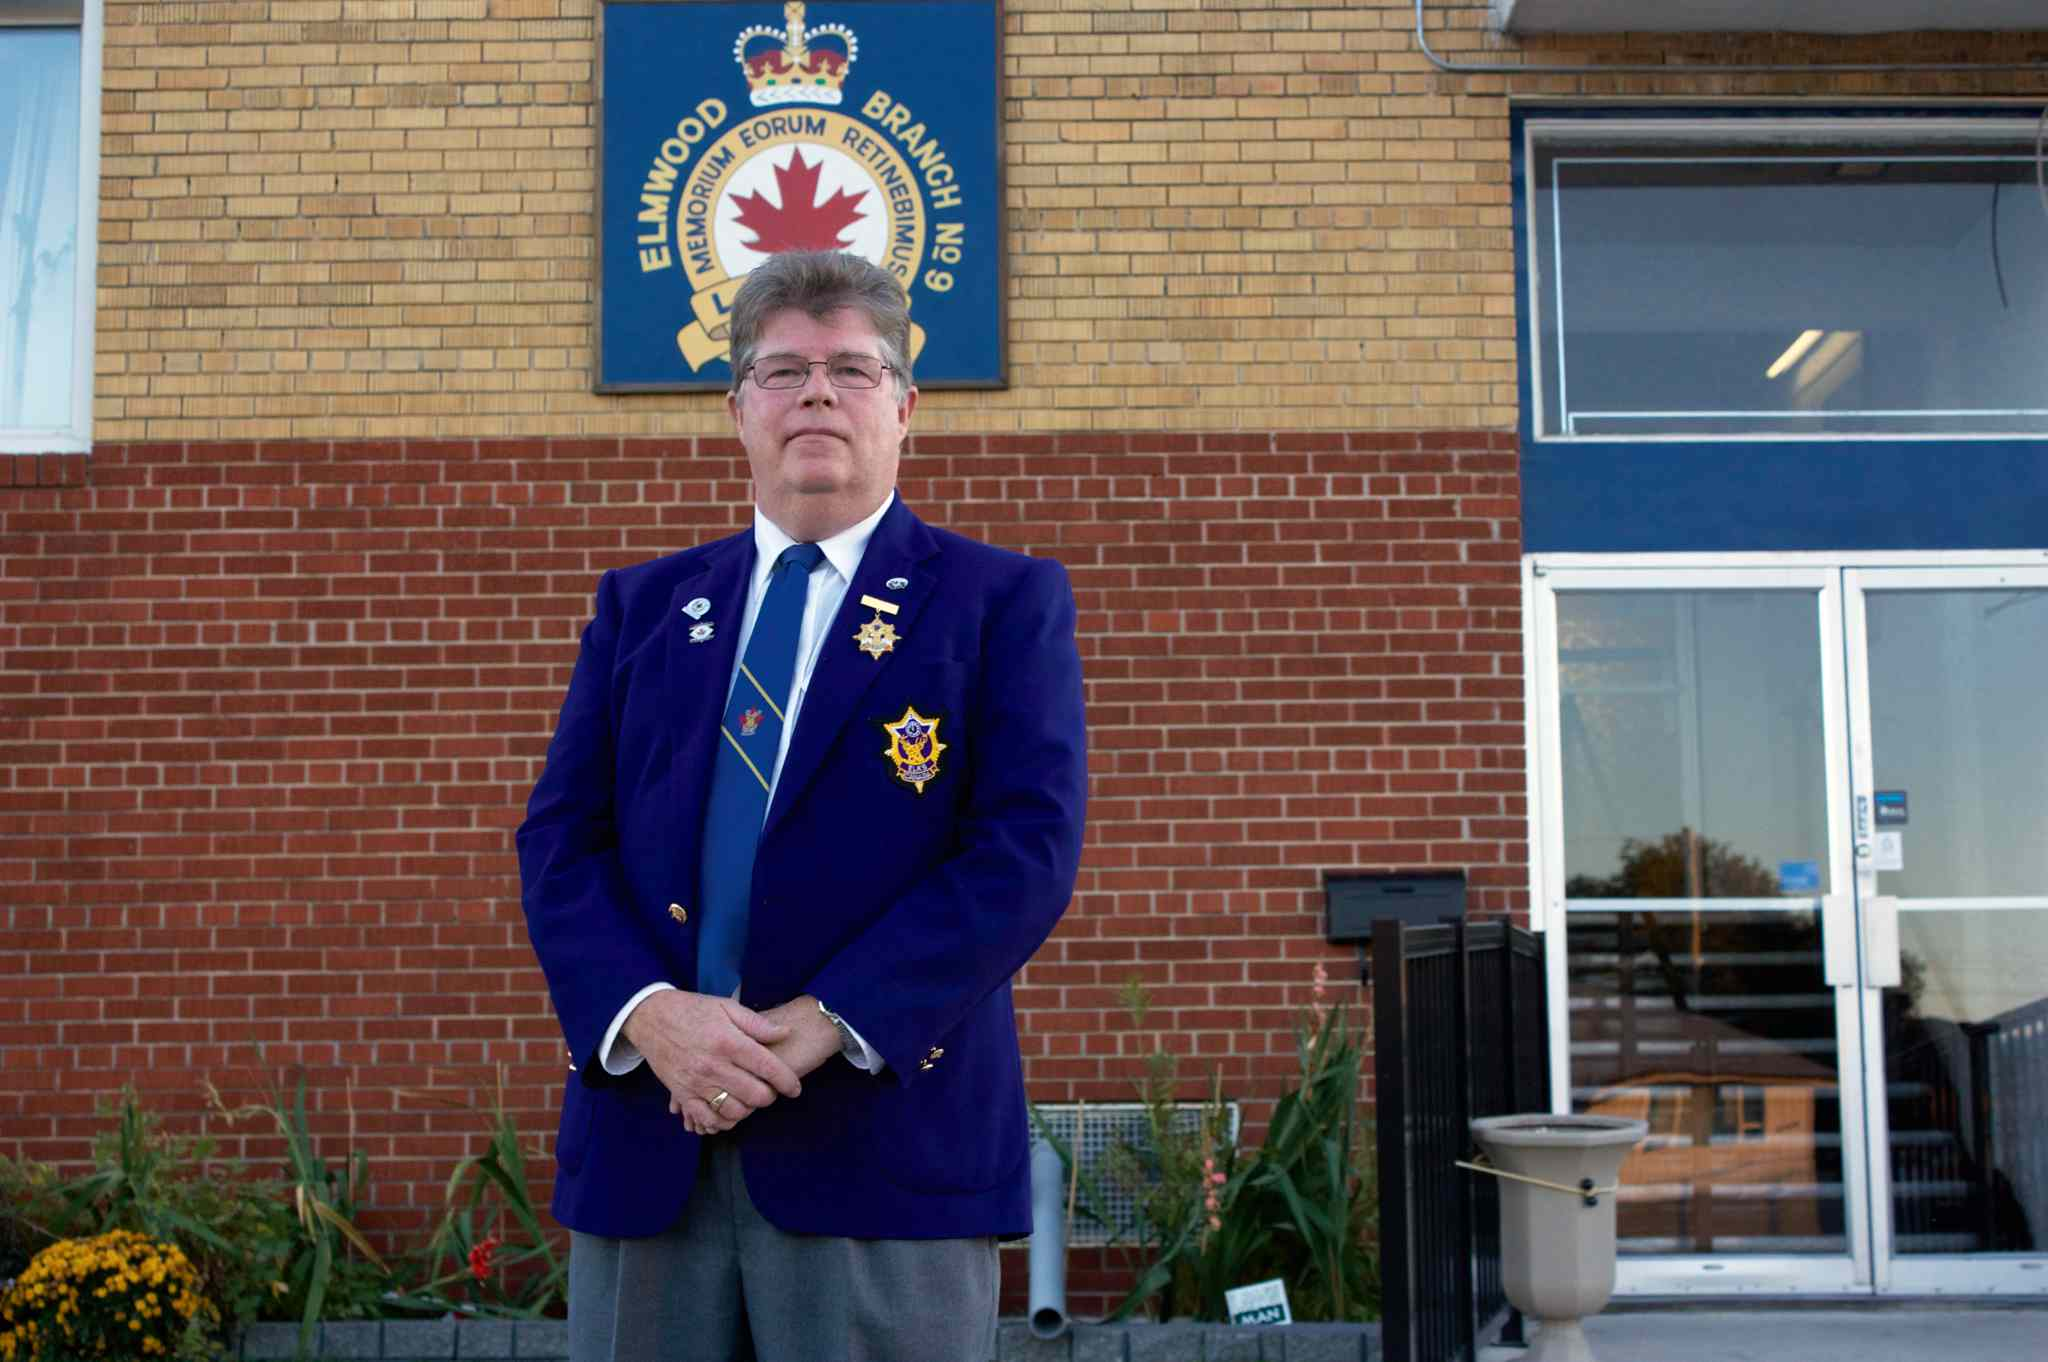 Winnipeg Elks Lodge #10 exalted ruler Bob Palmer is shown at the Royal Canadian Legion's Elmwood No. 9 branch. The Lodge is marking its 100th anniversary with a gala on Oct. 19.